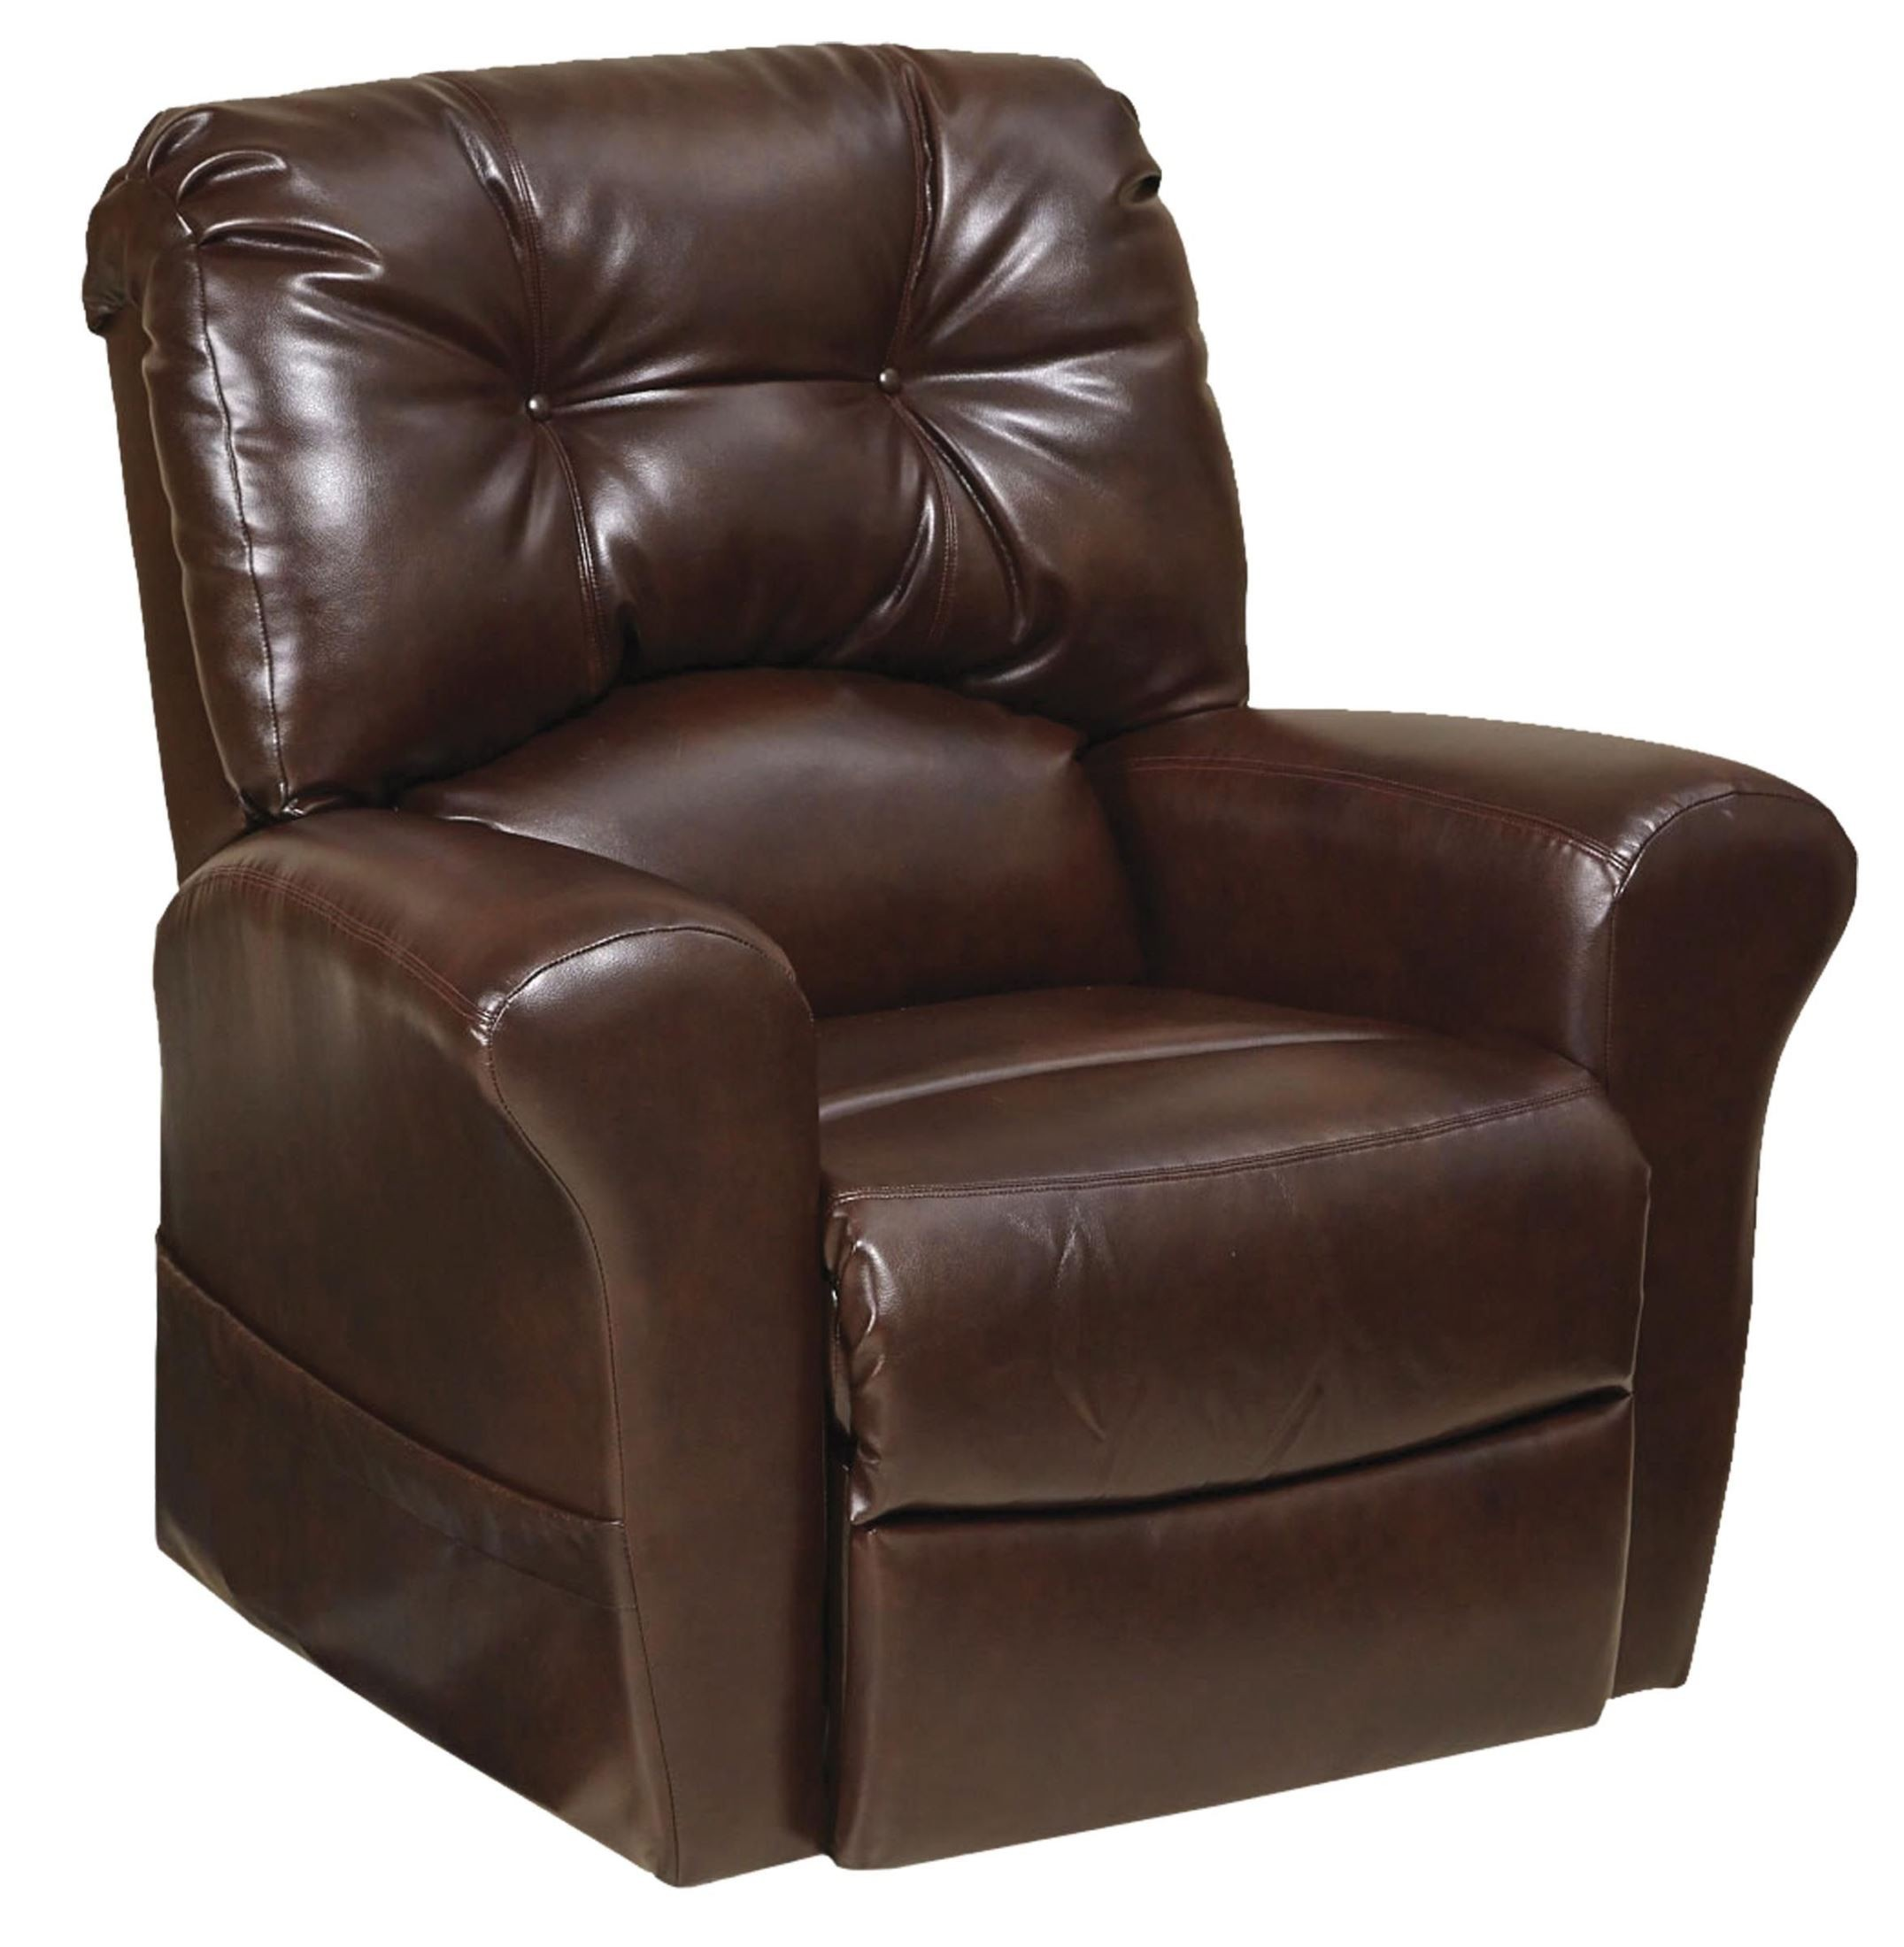 Landon java power lift recliner from catnapper for Catnapper cloud nine chaise recliner